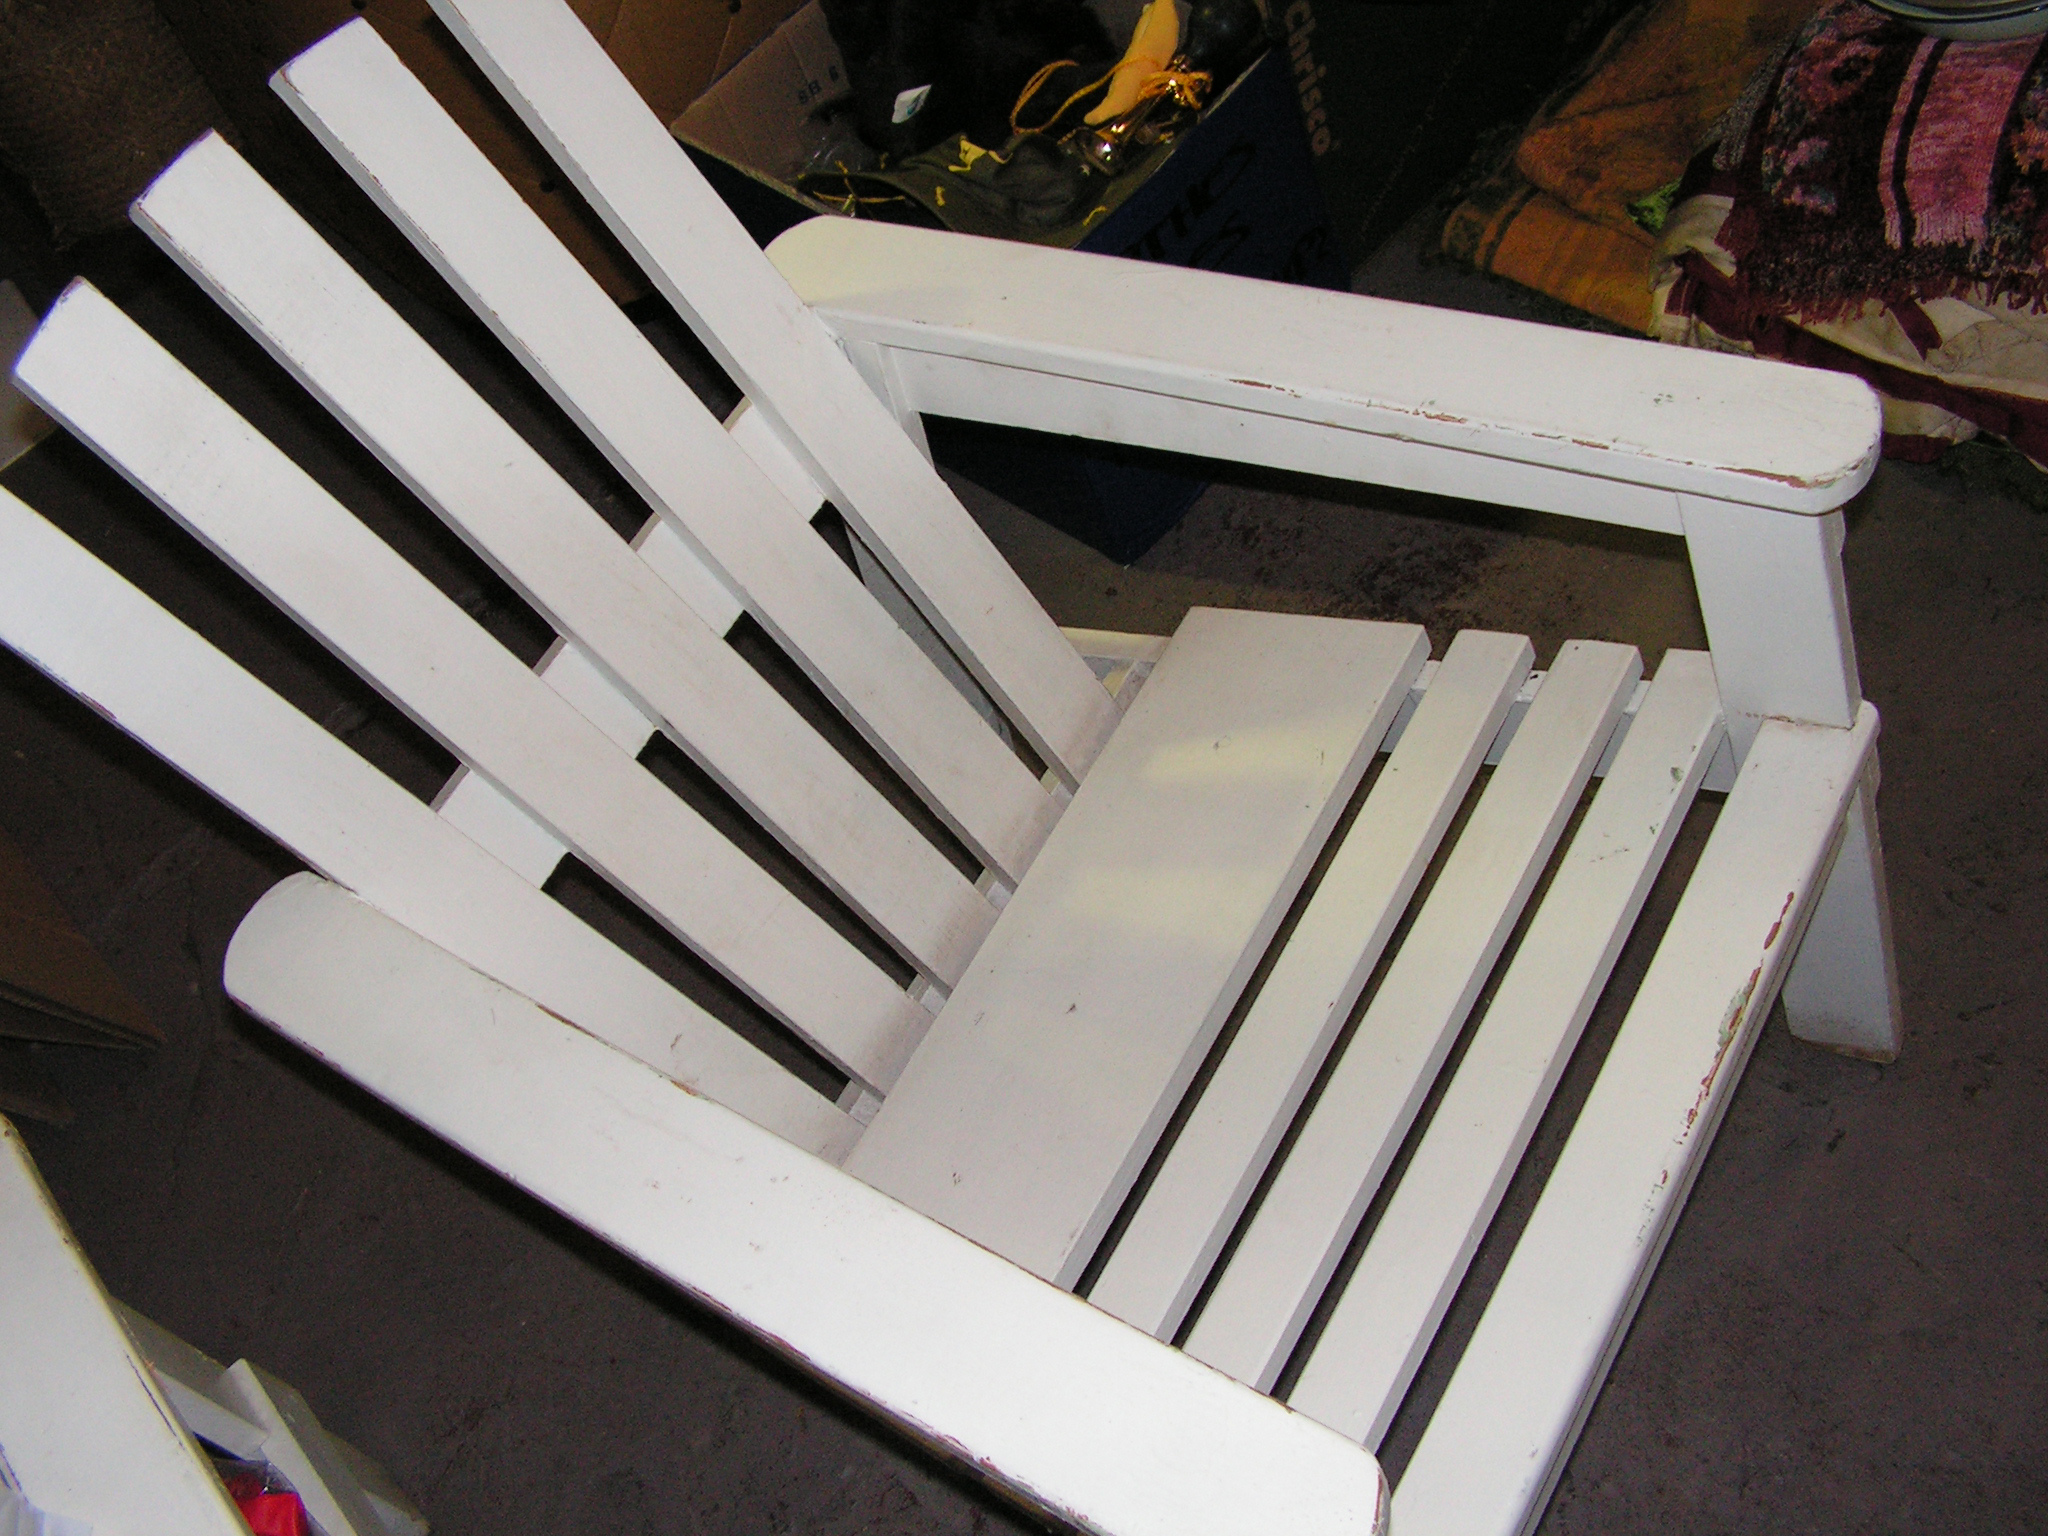 CHA0205 CHAIR, Garden - Timber White Slat (Cape Cod Style) $37.50